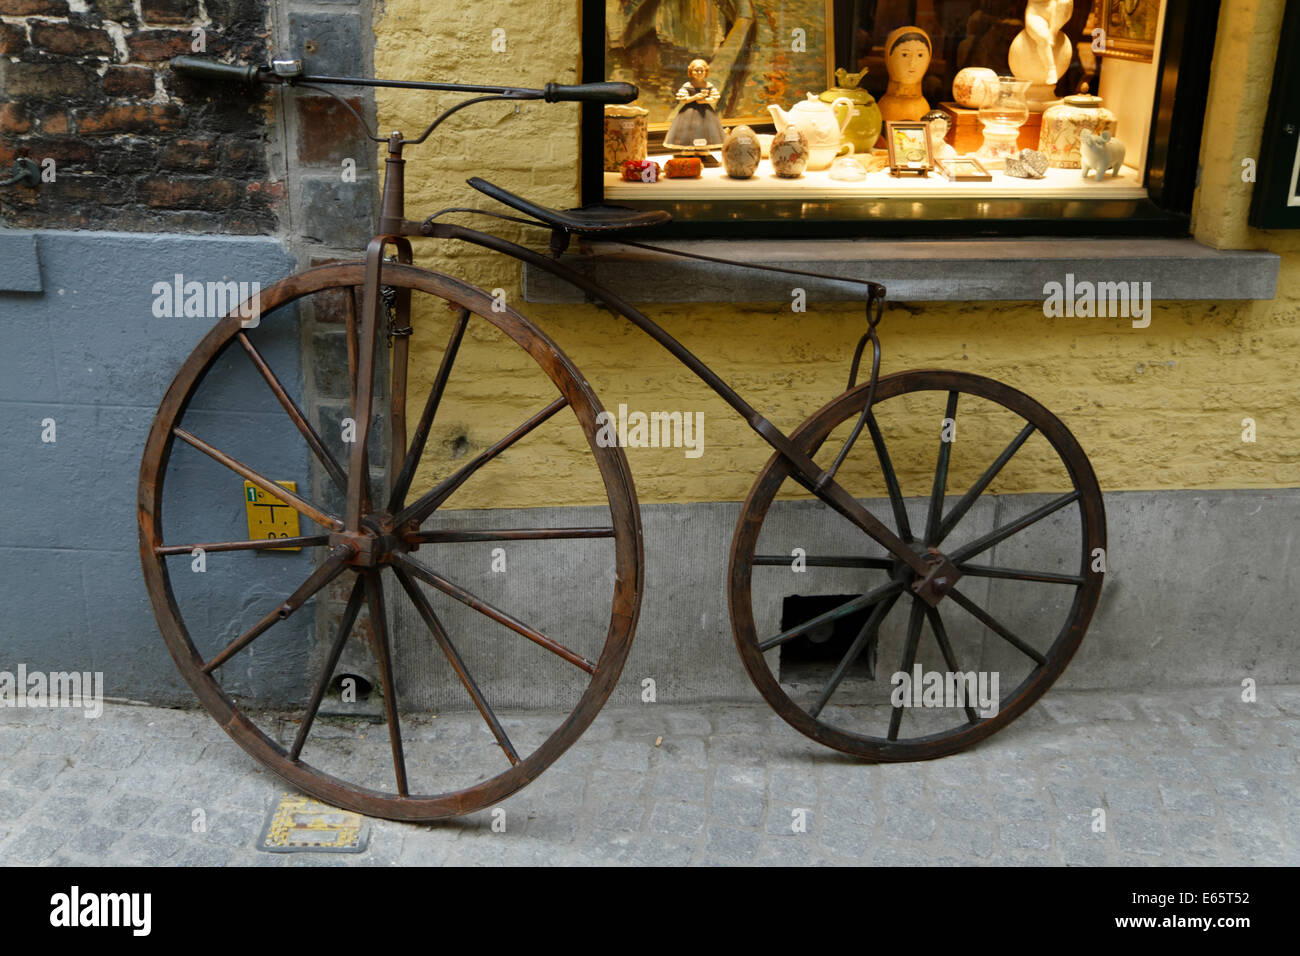 A 19th-century bicycle leans against an  antique shop wall and its illuminated window in Bruge - Stock Image